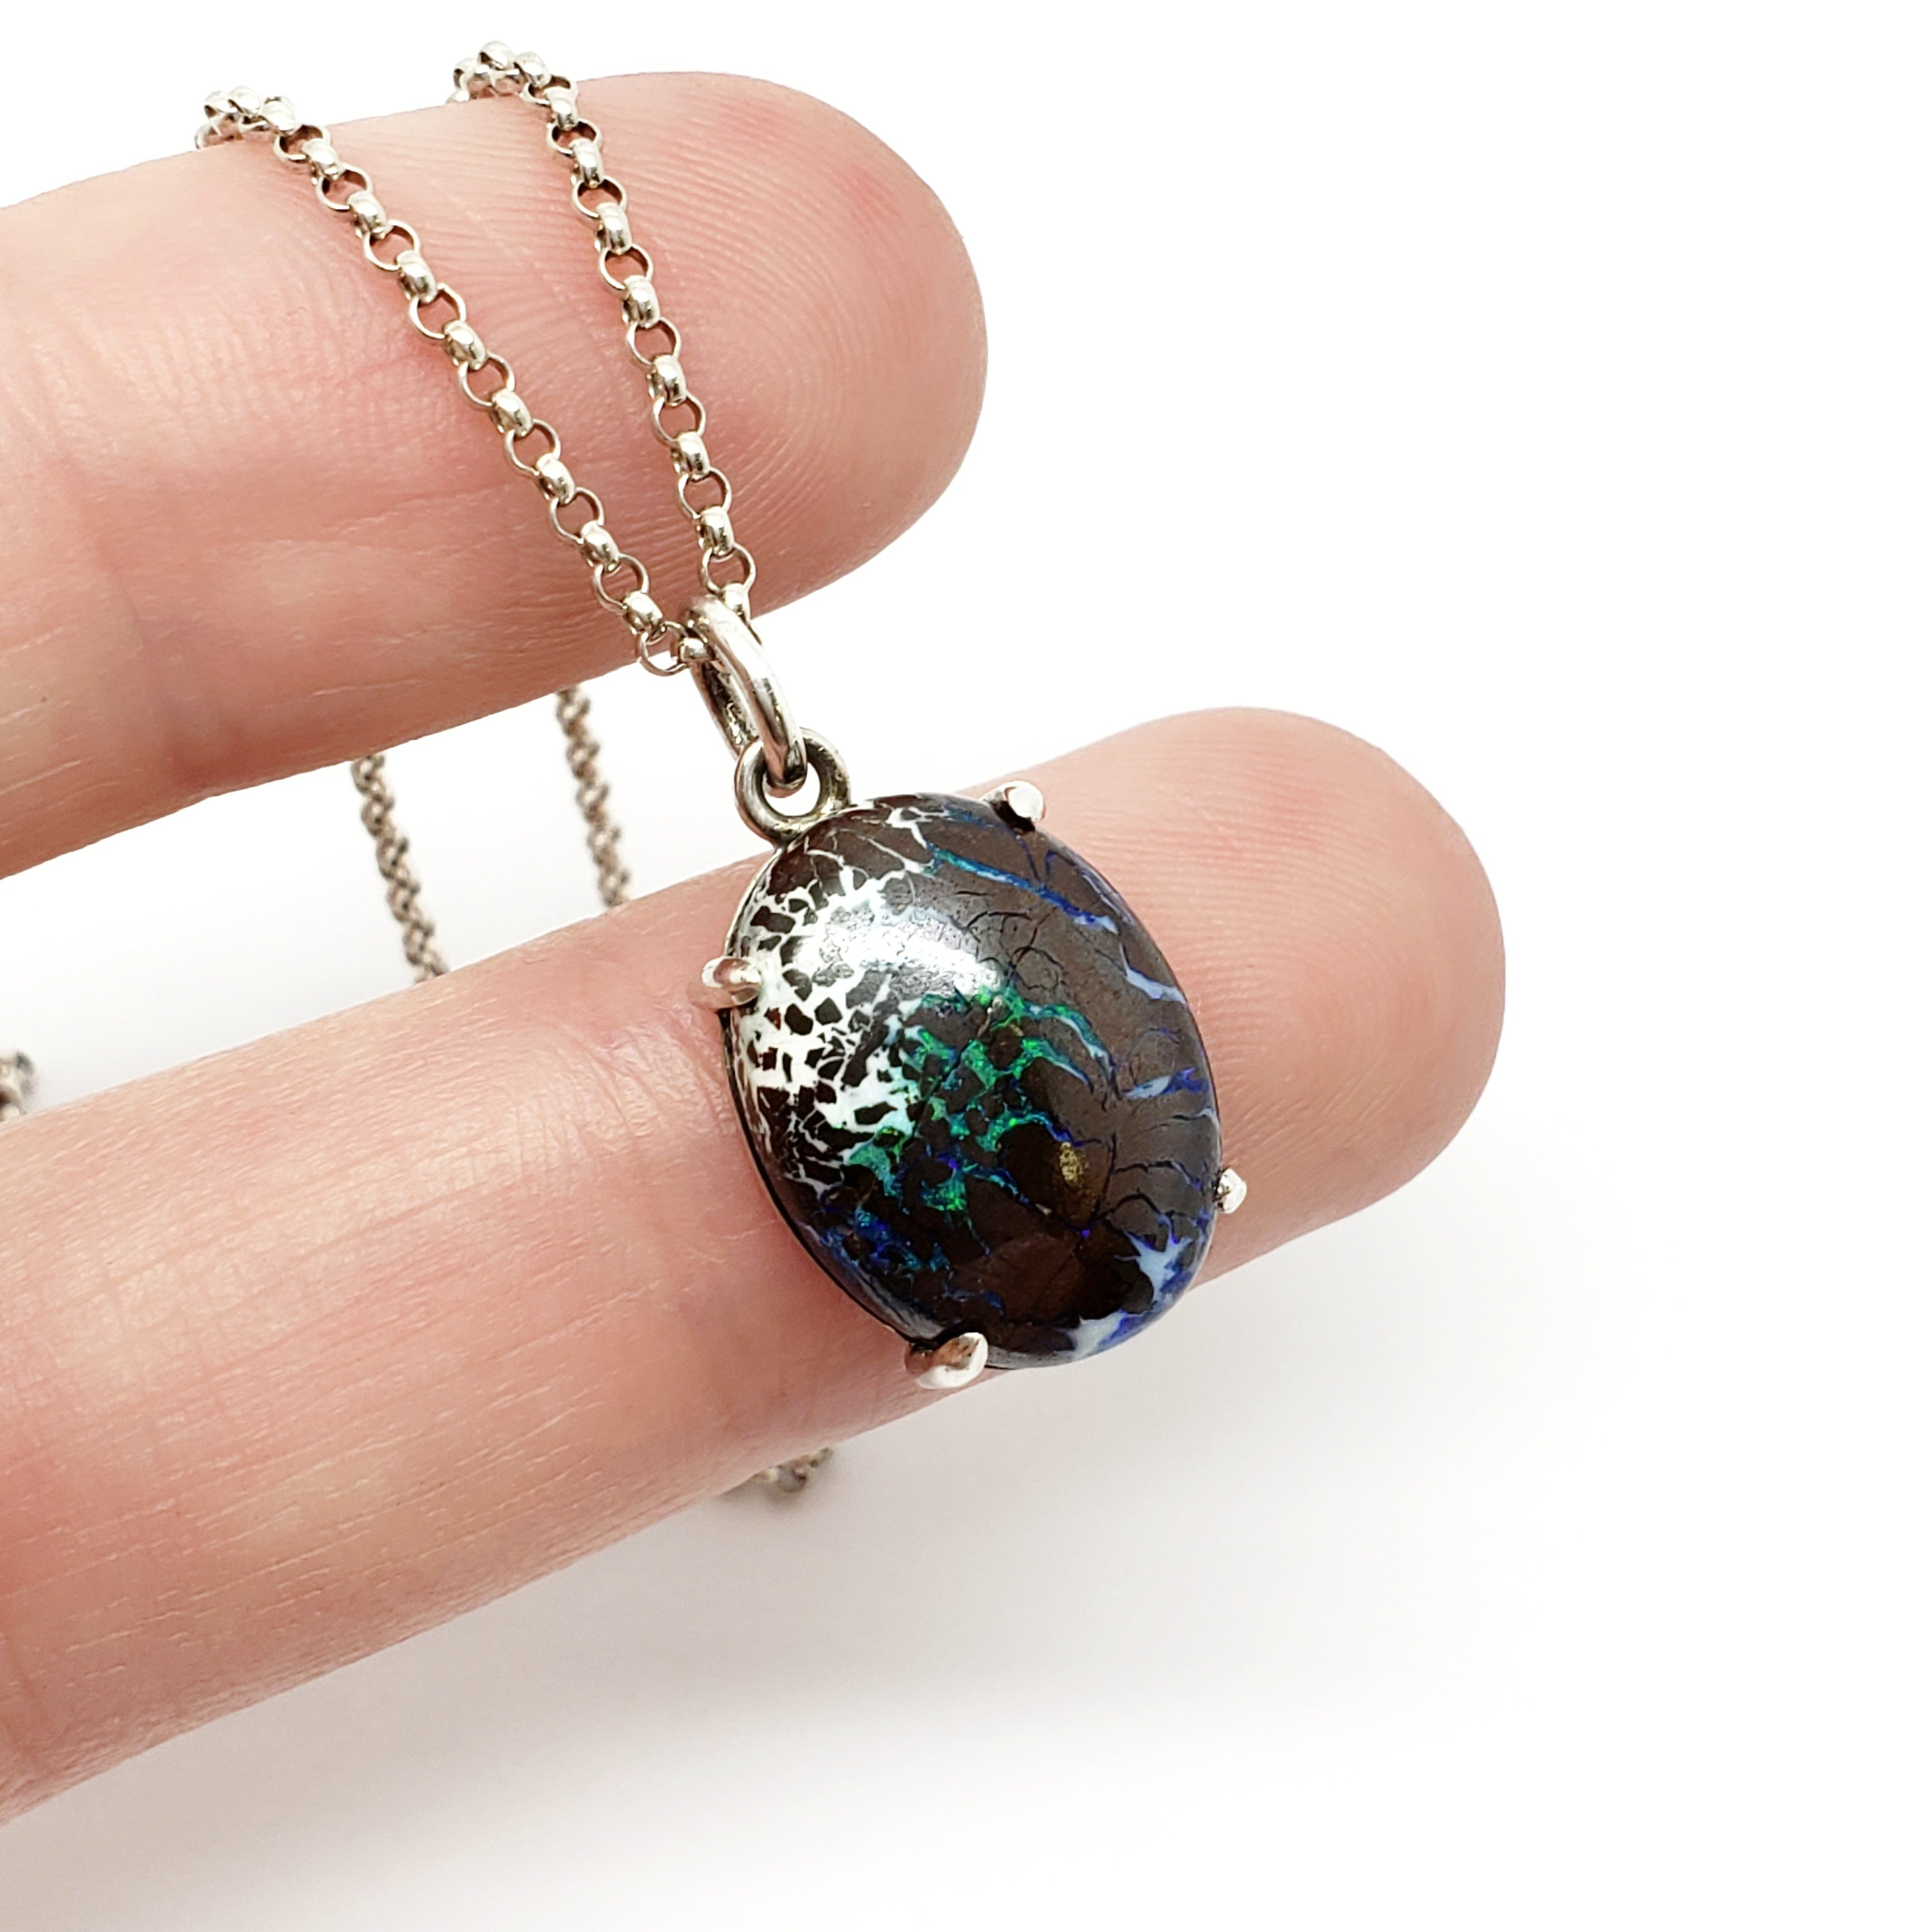 Boulder Opal Necklace | Era Design Vancouver Canada